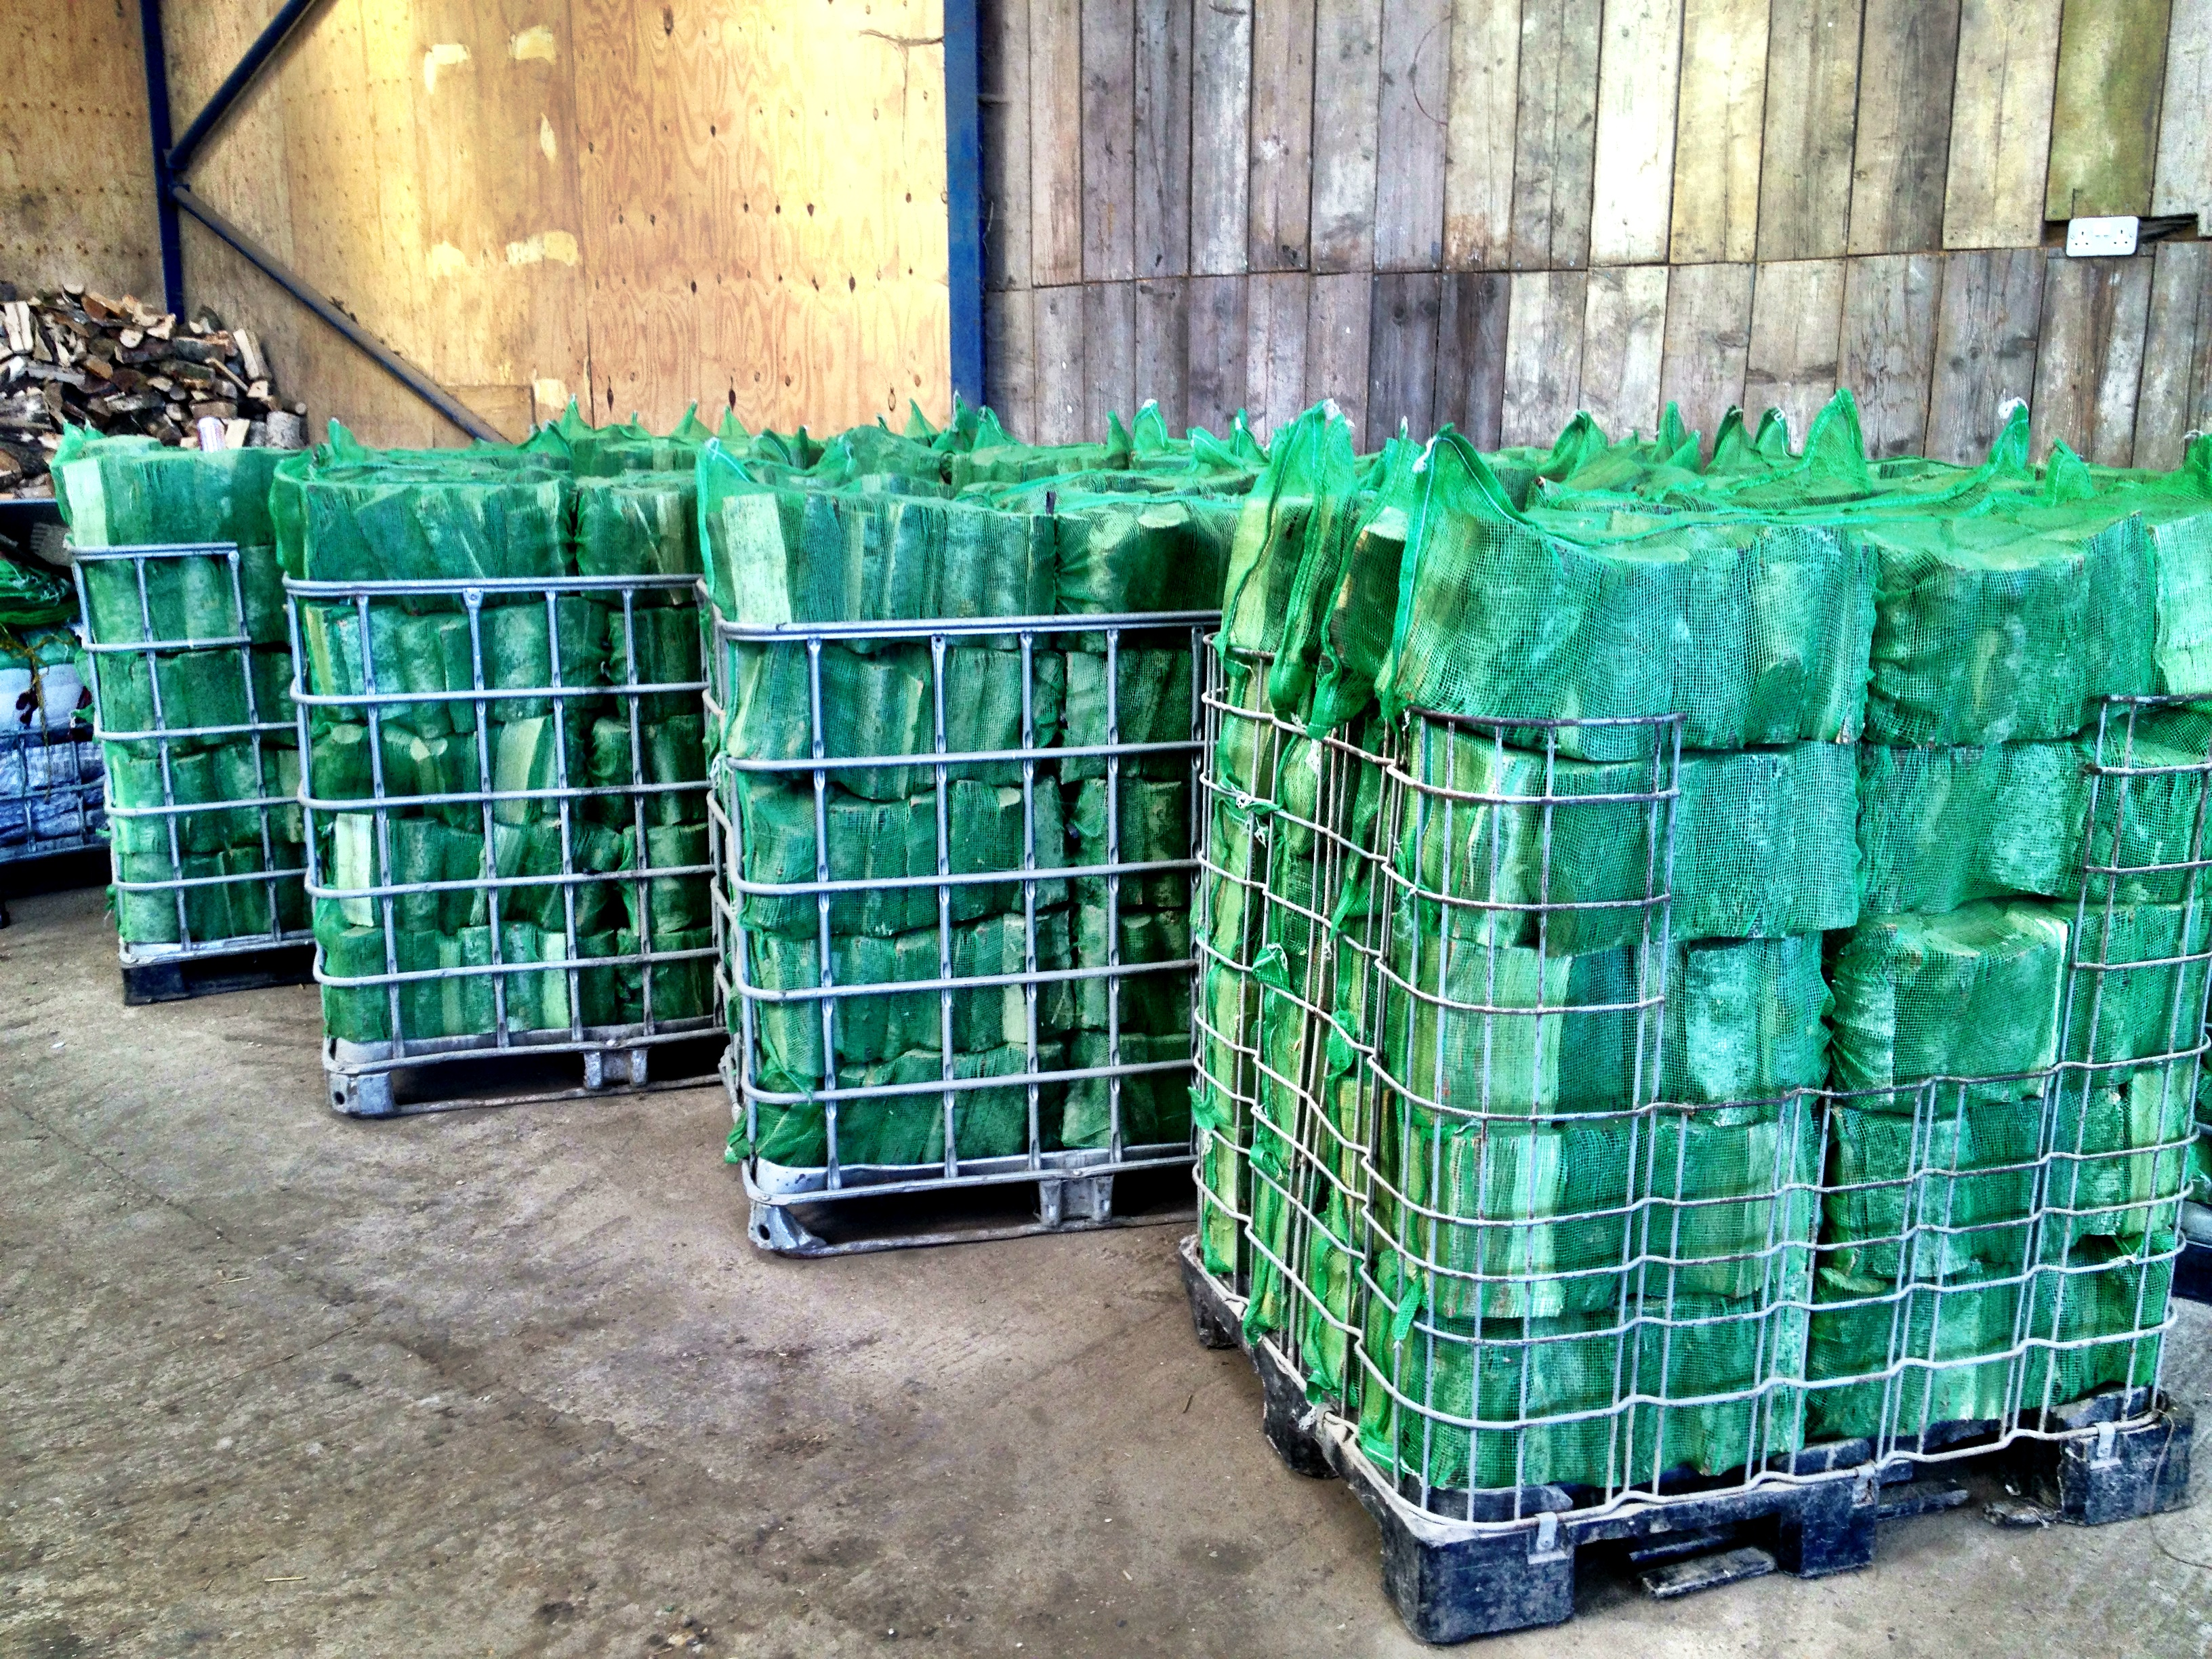 Pallets of bagged logs